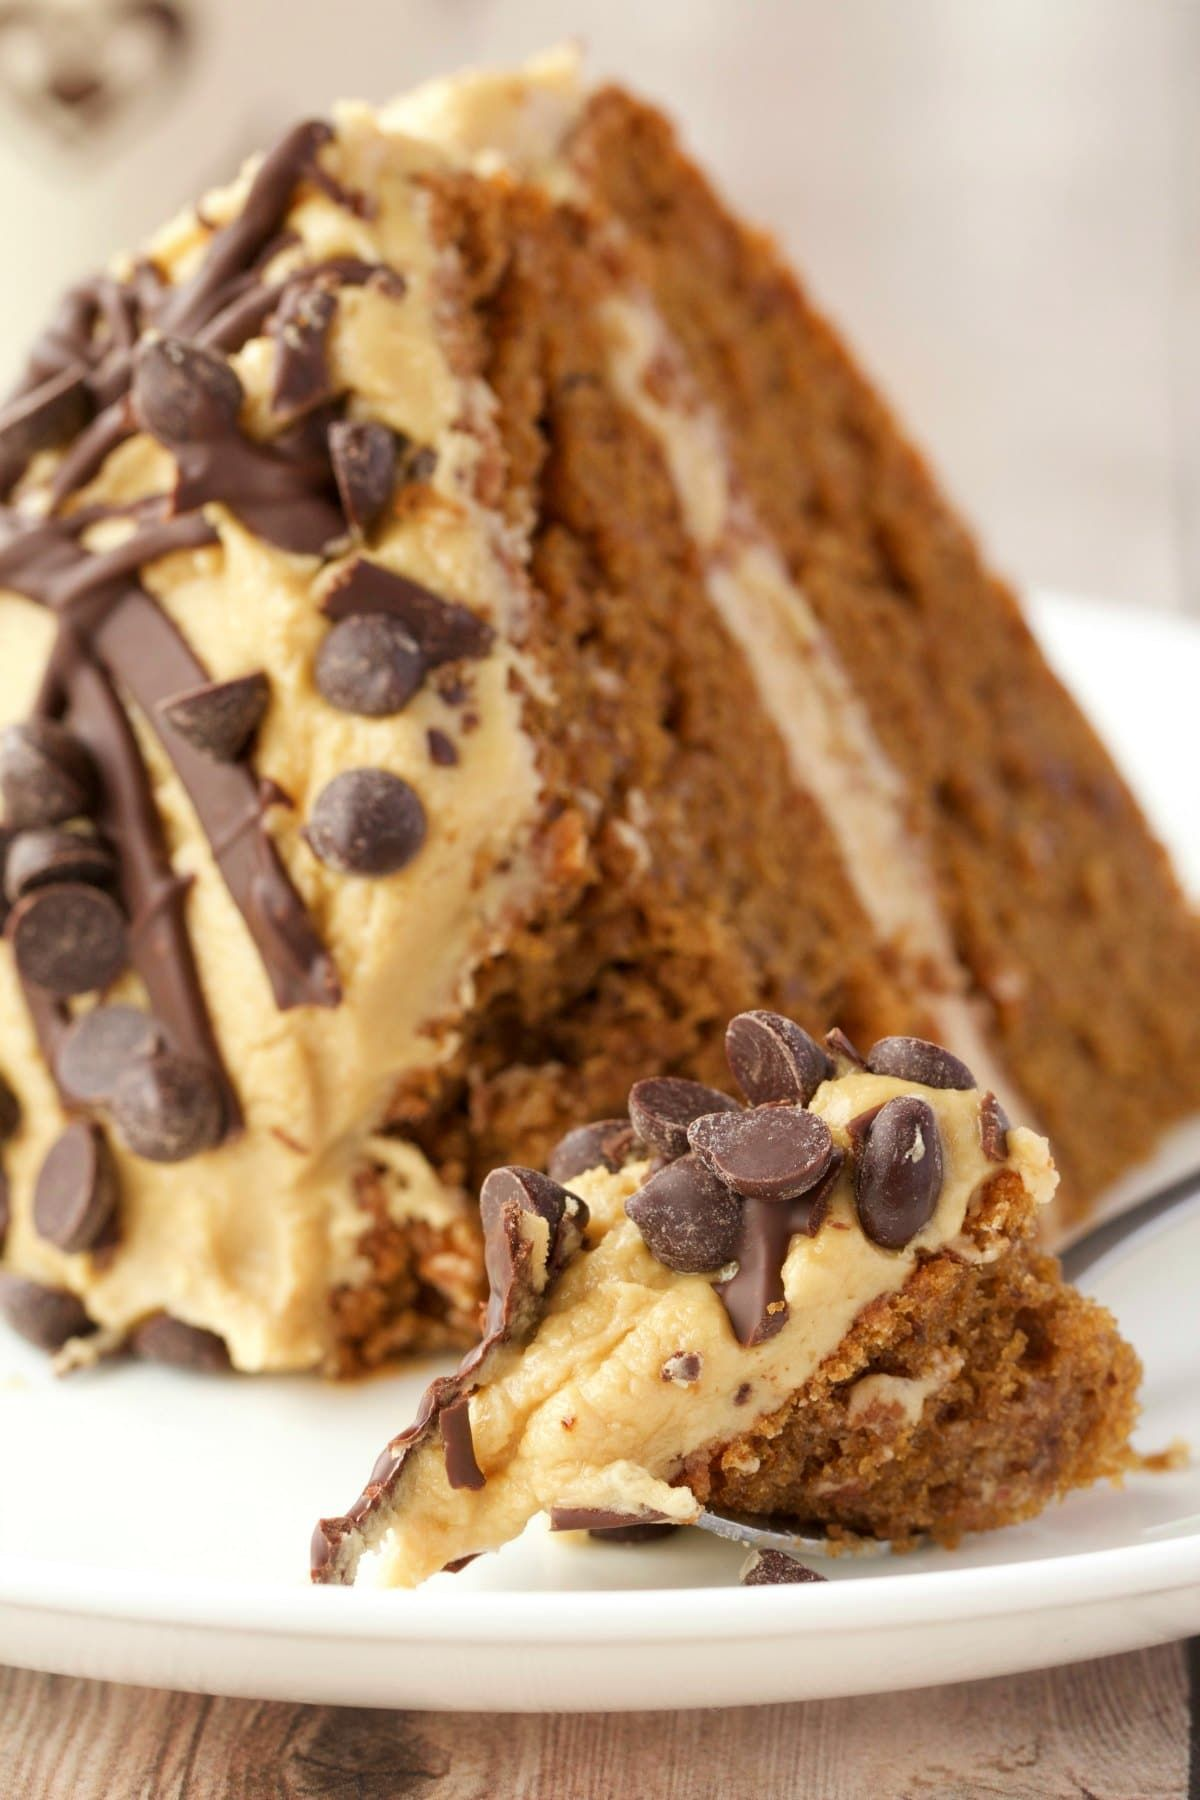 Insanely Delicious Vegan Coffee Cake With Kahlua Frosting This Isn